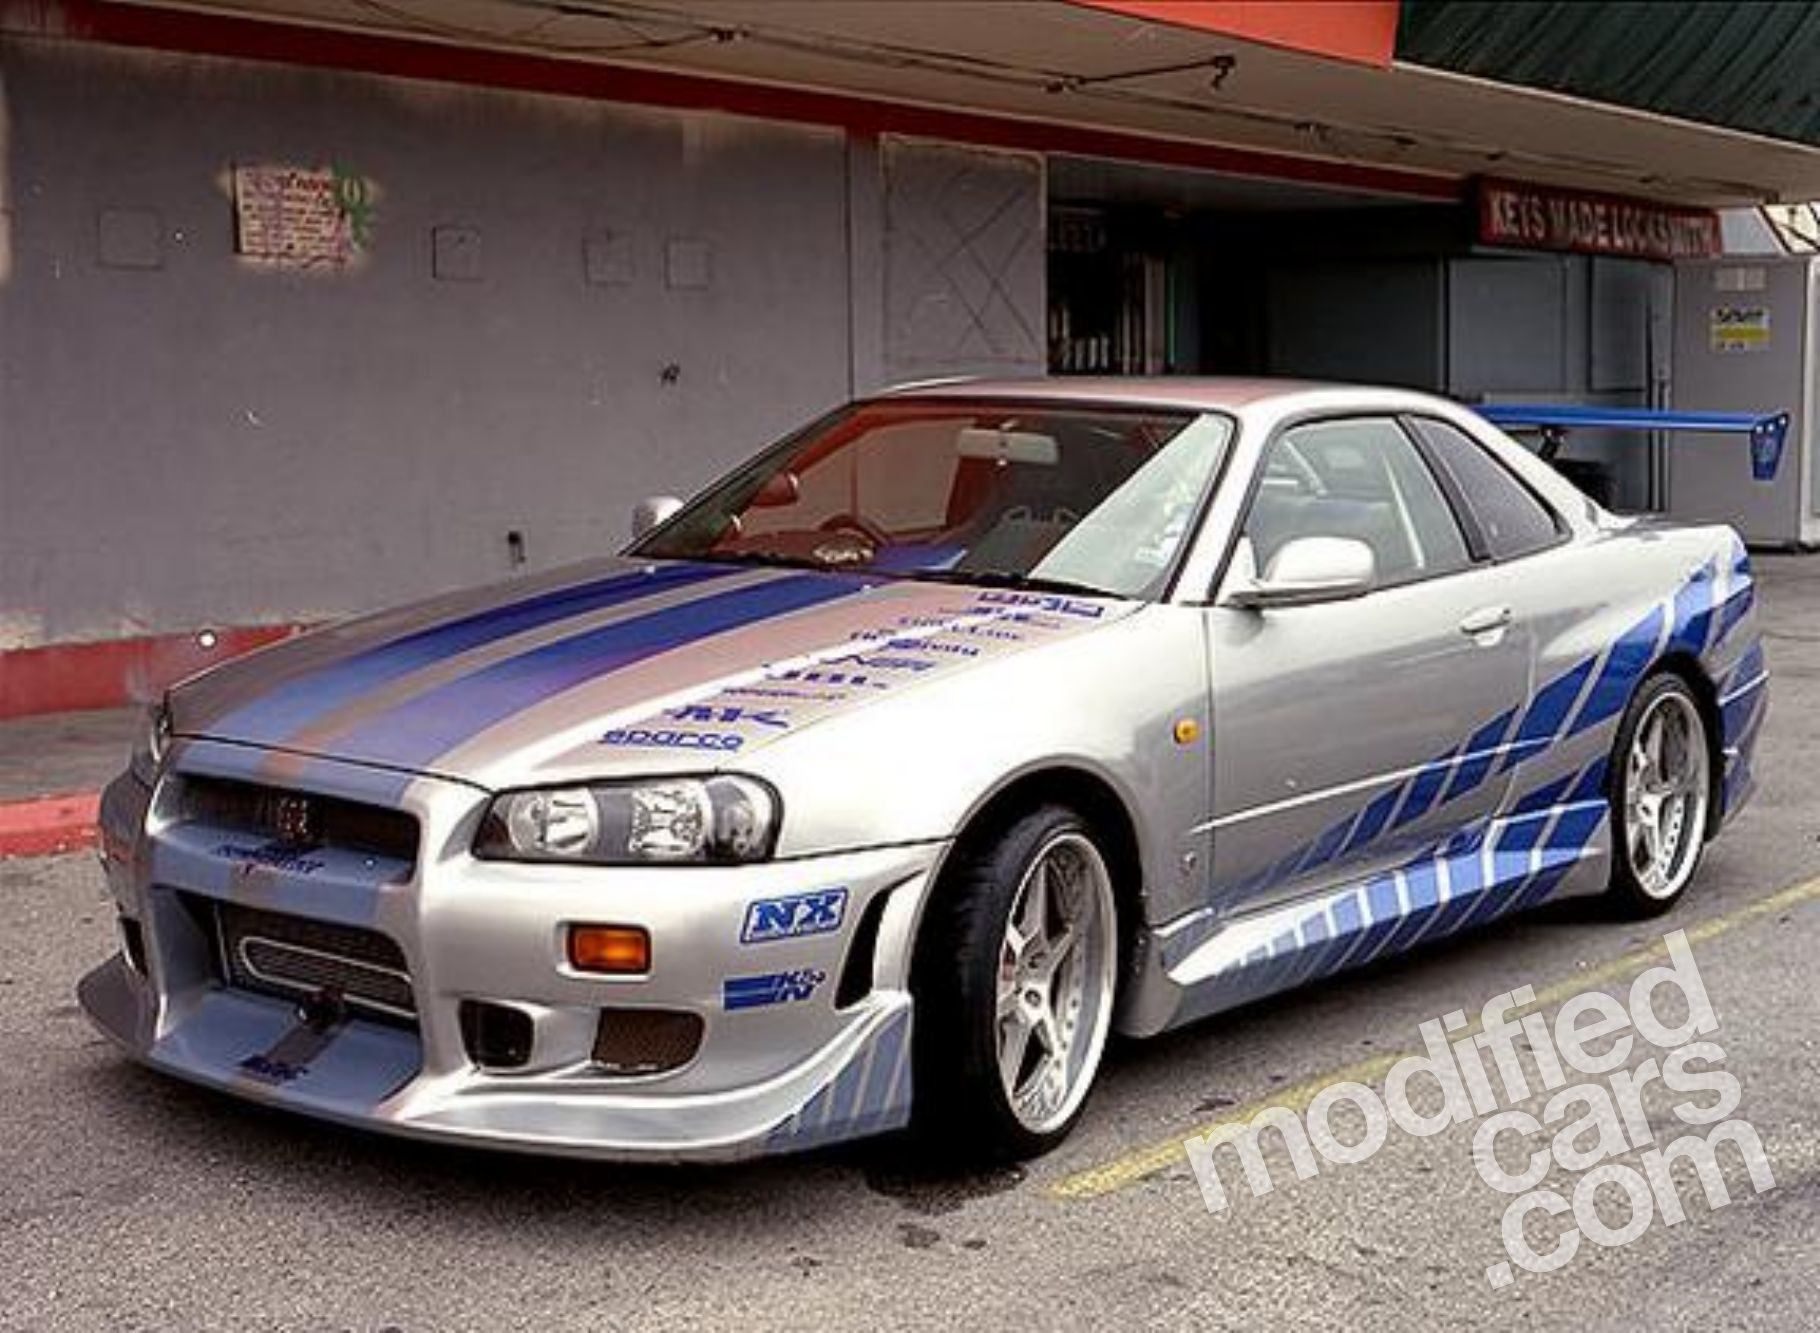 21 best nissan images on pinterest dream cars fast cars and car find this pin and more on nissan by willsir18 vanachro Choice Image